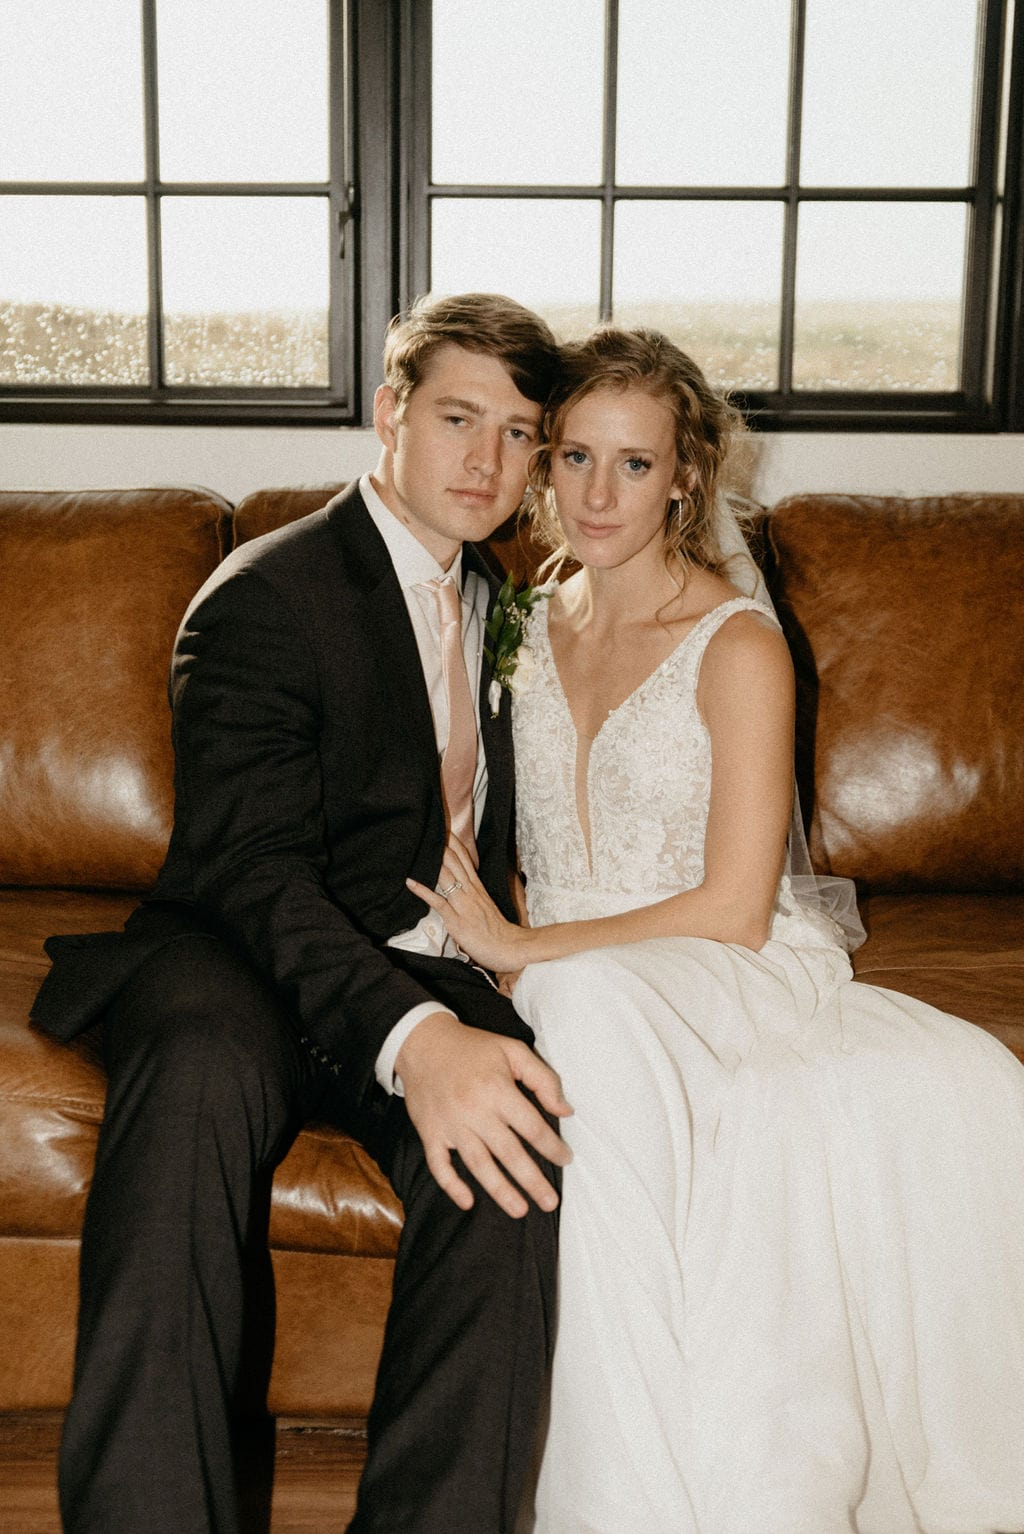 Indoor Vintage inspired Couples Portraits on a Rainy Wedding Day